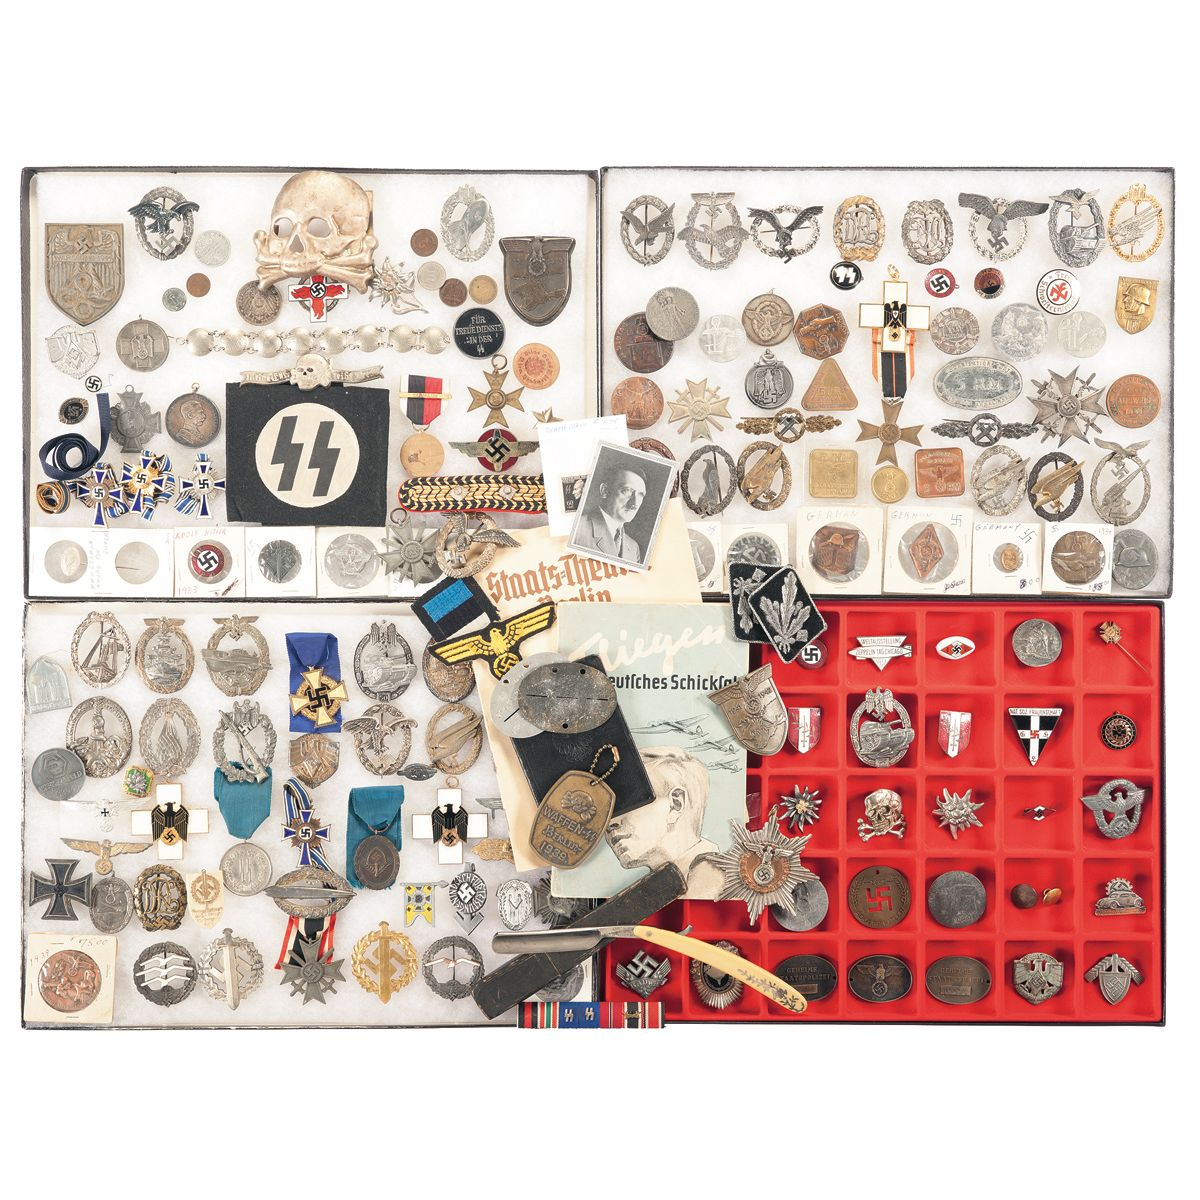 Nazi style Buttons, Pins, Medals, Insignia and Other Miscellaneous Items